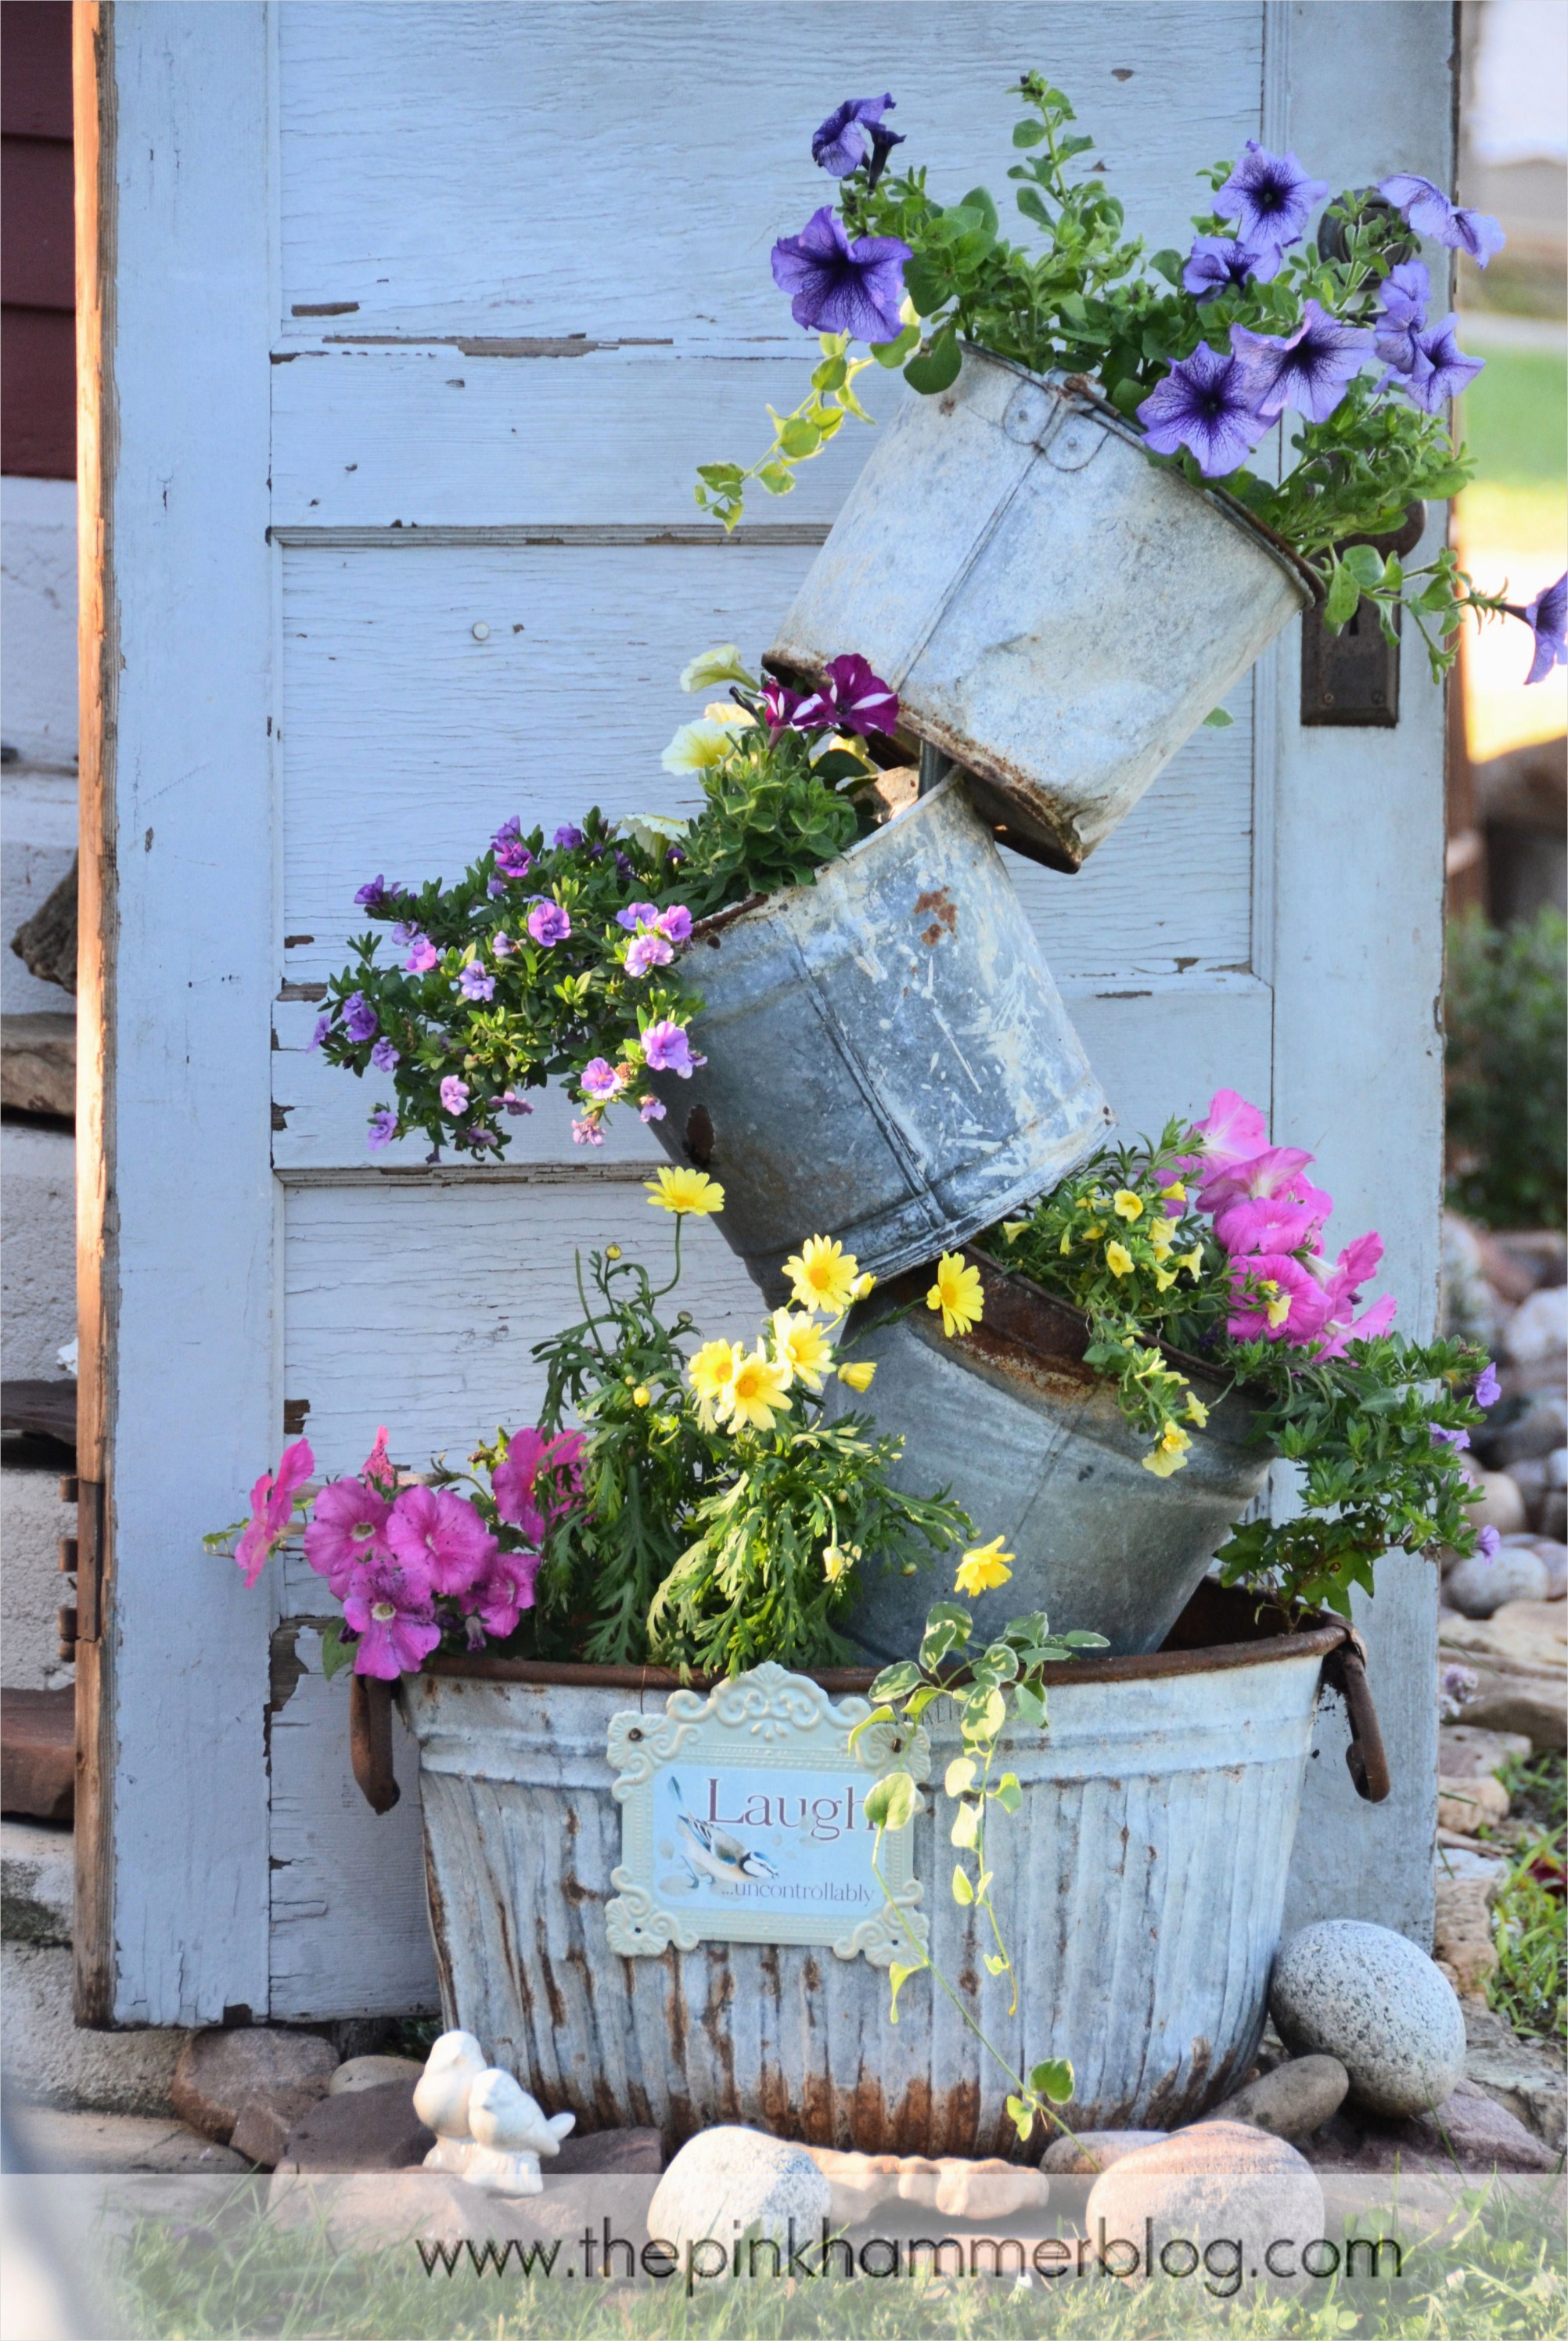 44 Amazing Rustic Garden Ideas 36 Primitive Tipsy Pot Planters Diy Rustic Garden Decor 6